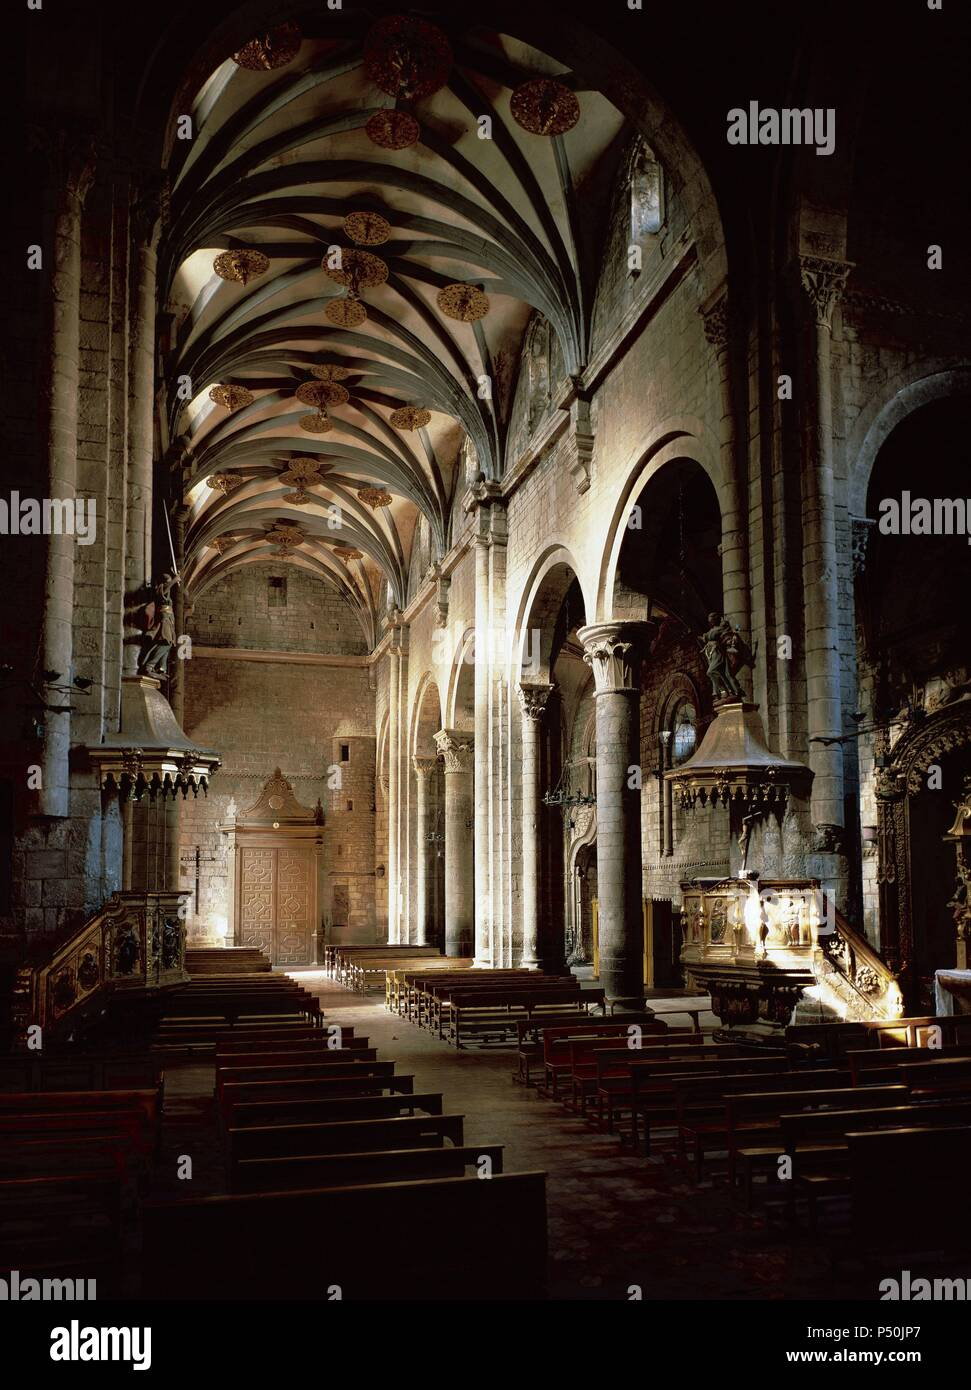 Saint Peter's Cathedral. Romanesque temple built during the kingdom of Ramiro I (1035-1063), king of Aragon. XI century. Inside view. Central nave. Jaca. Aragon. Spain. - Stock Image